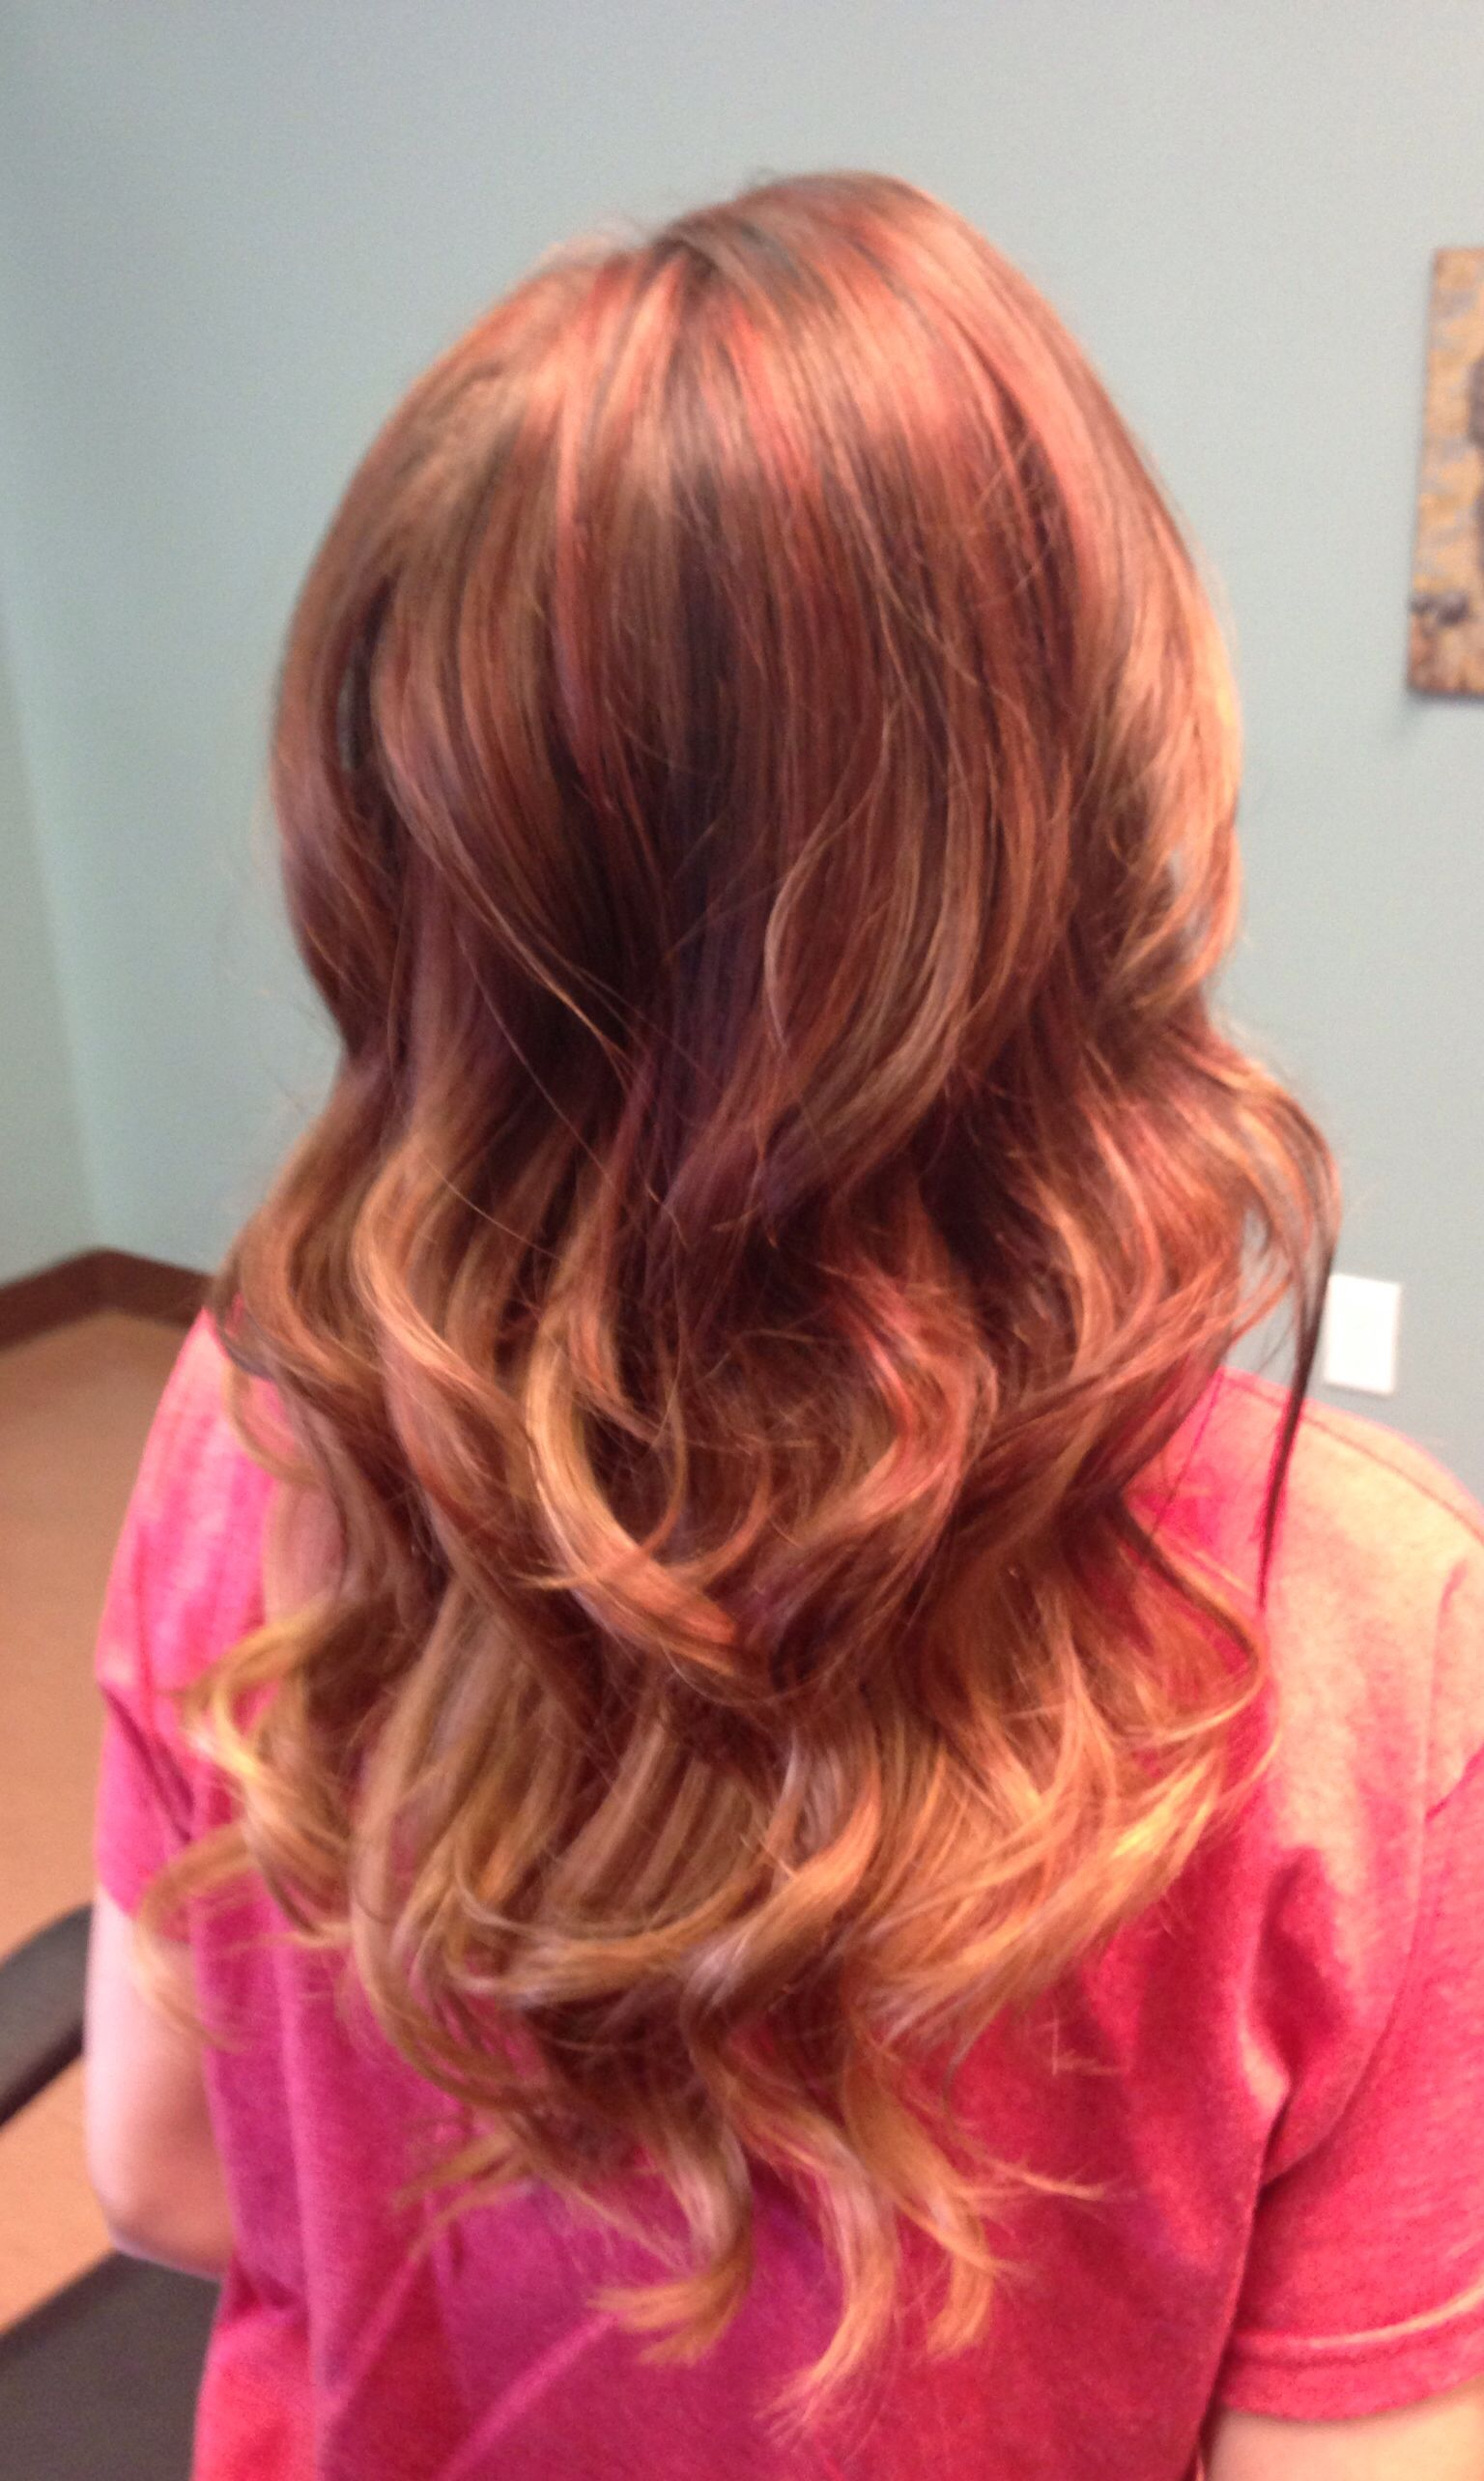 Hair by Stormie Kaney for Solange Salon Red lowlights Peekaboo